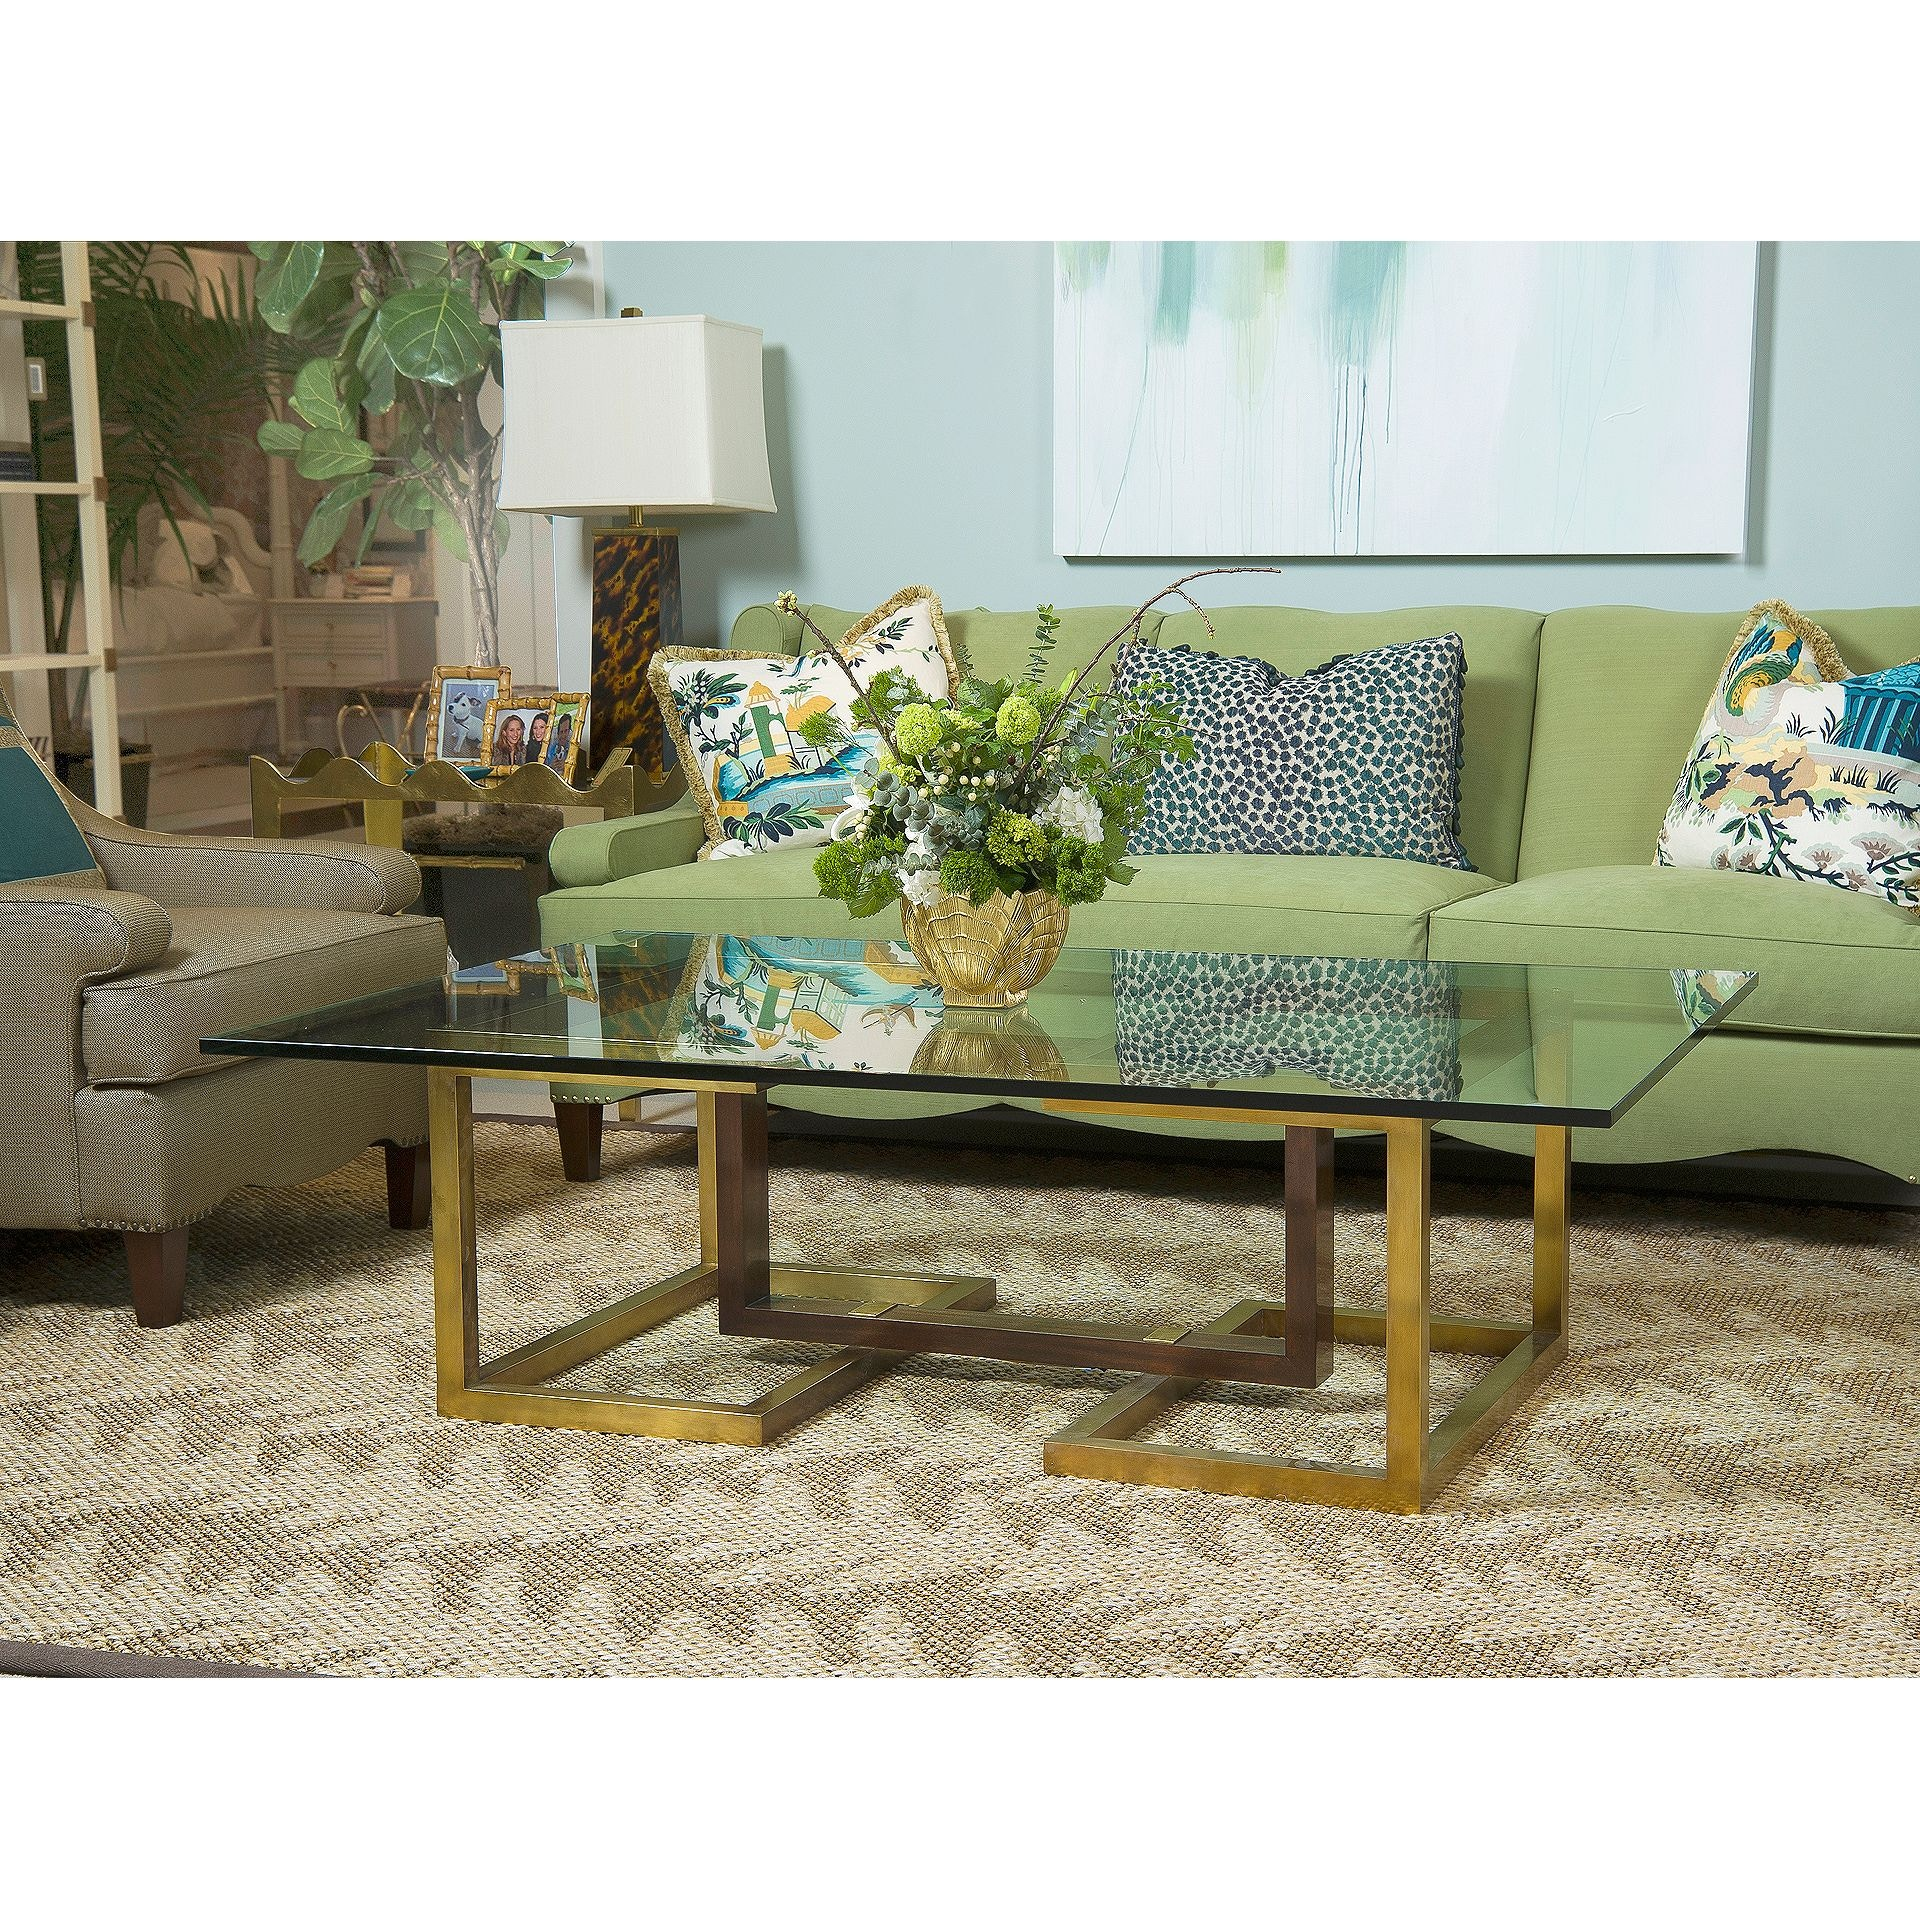 Henredon Furniture Celerie Kemble For Henredon Palm Beach Sofa H1304 C